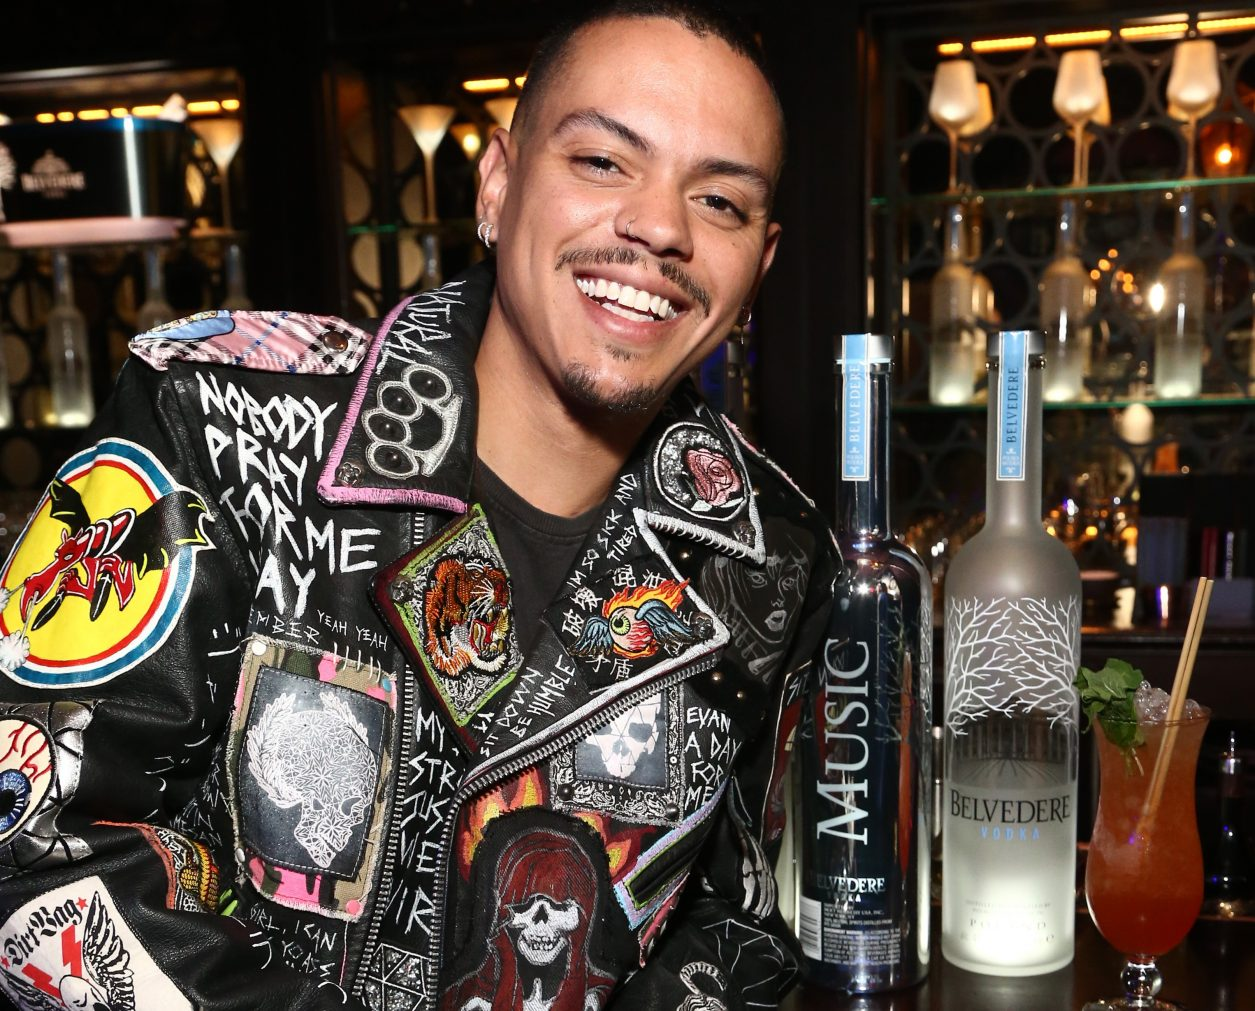 LOS ANGELES, CALIFORNIA - FEBRUARY 07:  Evan Ross at Belvedere Vodka Celebrates Warner Music Group's 61st Annual Grammy Award Nominees at the Pre-Award Show Party at the NoMad Hotel In LA on February 07, 2019 in Los Angeles, California. (Photo by Tommaso Boddi/Getty Images for Belvedere)